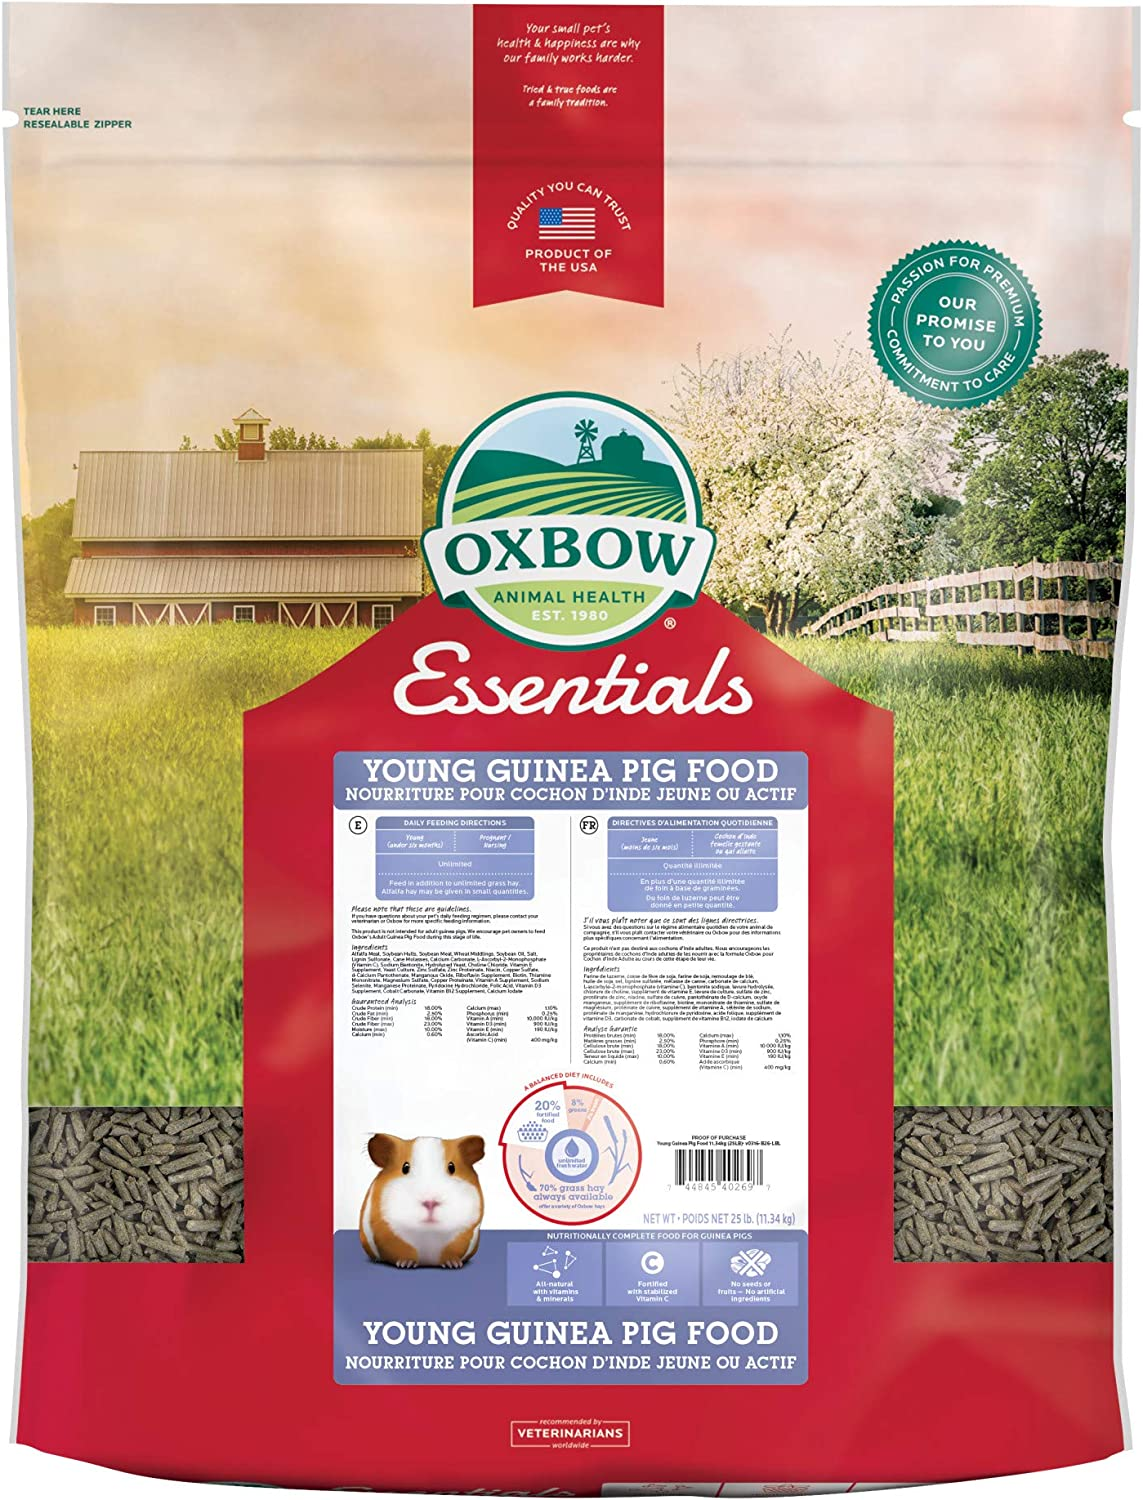 Oxbow Essentials Young Guinea Pig Food